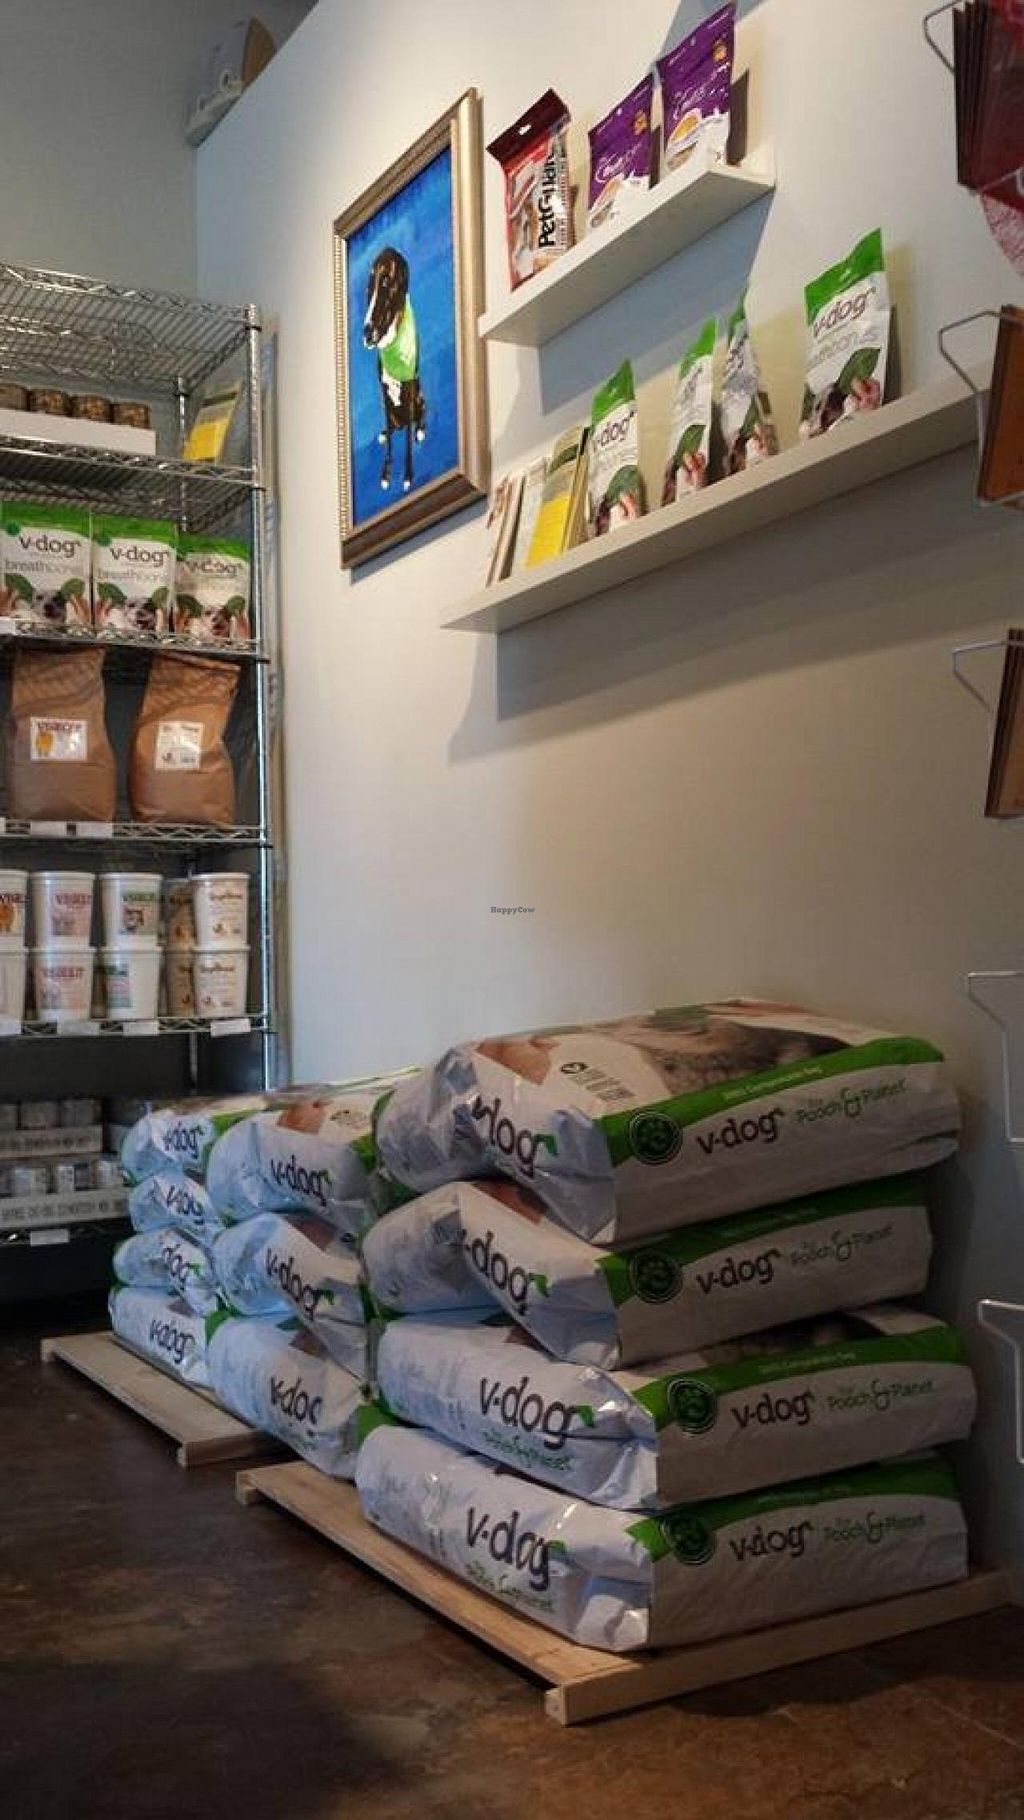 """Photo of Rabbit Food Grocery  by <a href=""""/members/profile/lizzdelicious"""">lizzdelicious</a> <br/>Inside Rabbit Food Grocery <br/> February 16, 2015  - <a href='/contact/abuse/image/55571/93228'>Report</a>"""